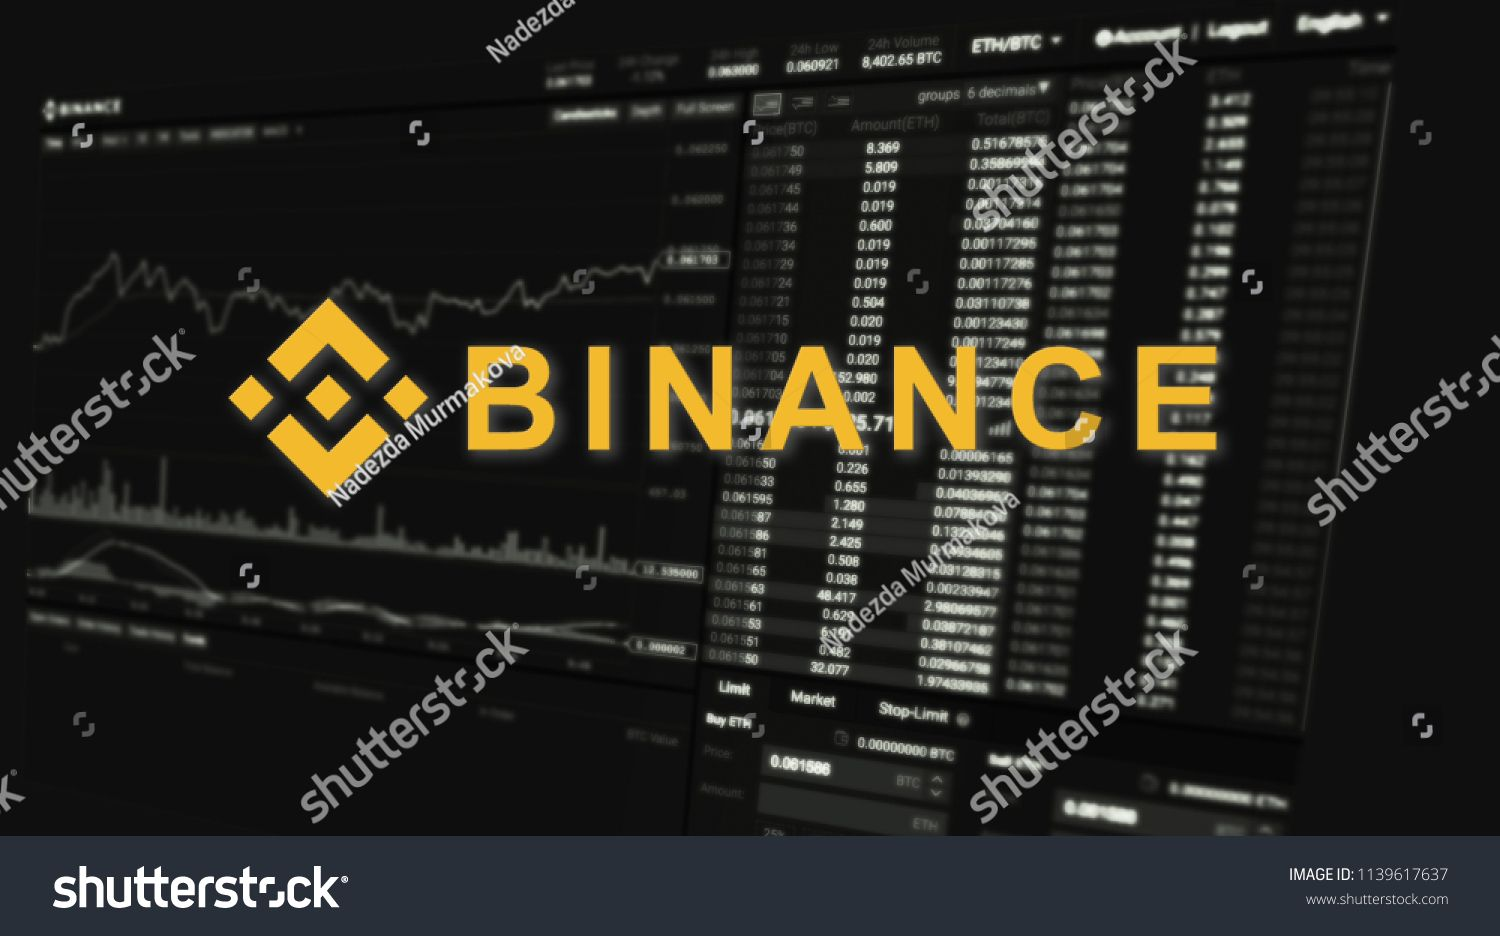 binance different cryptocurrency exchange